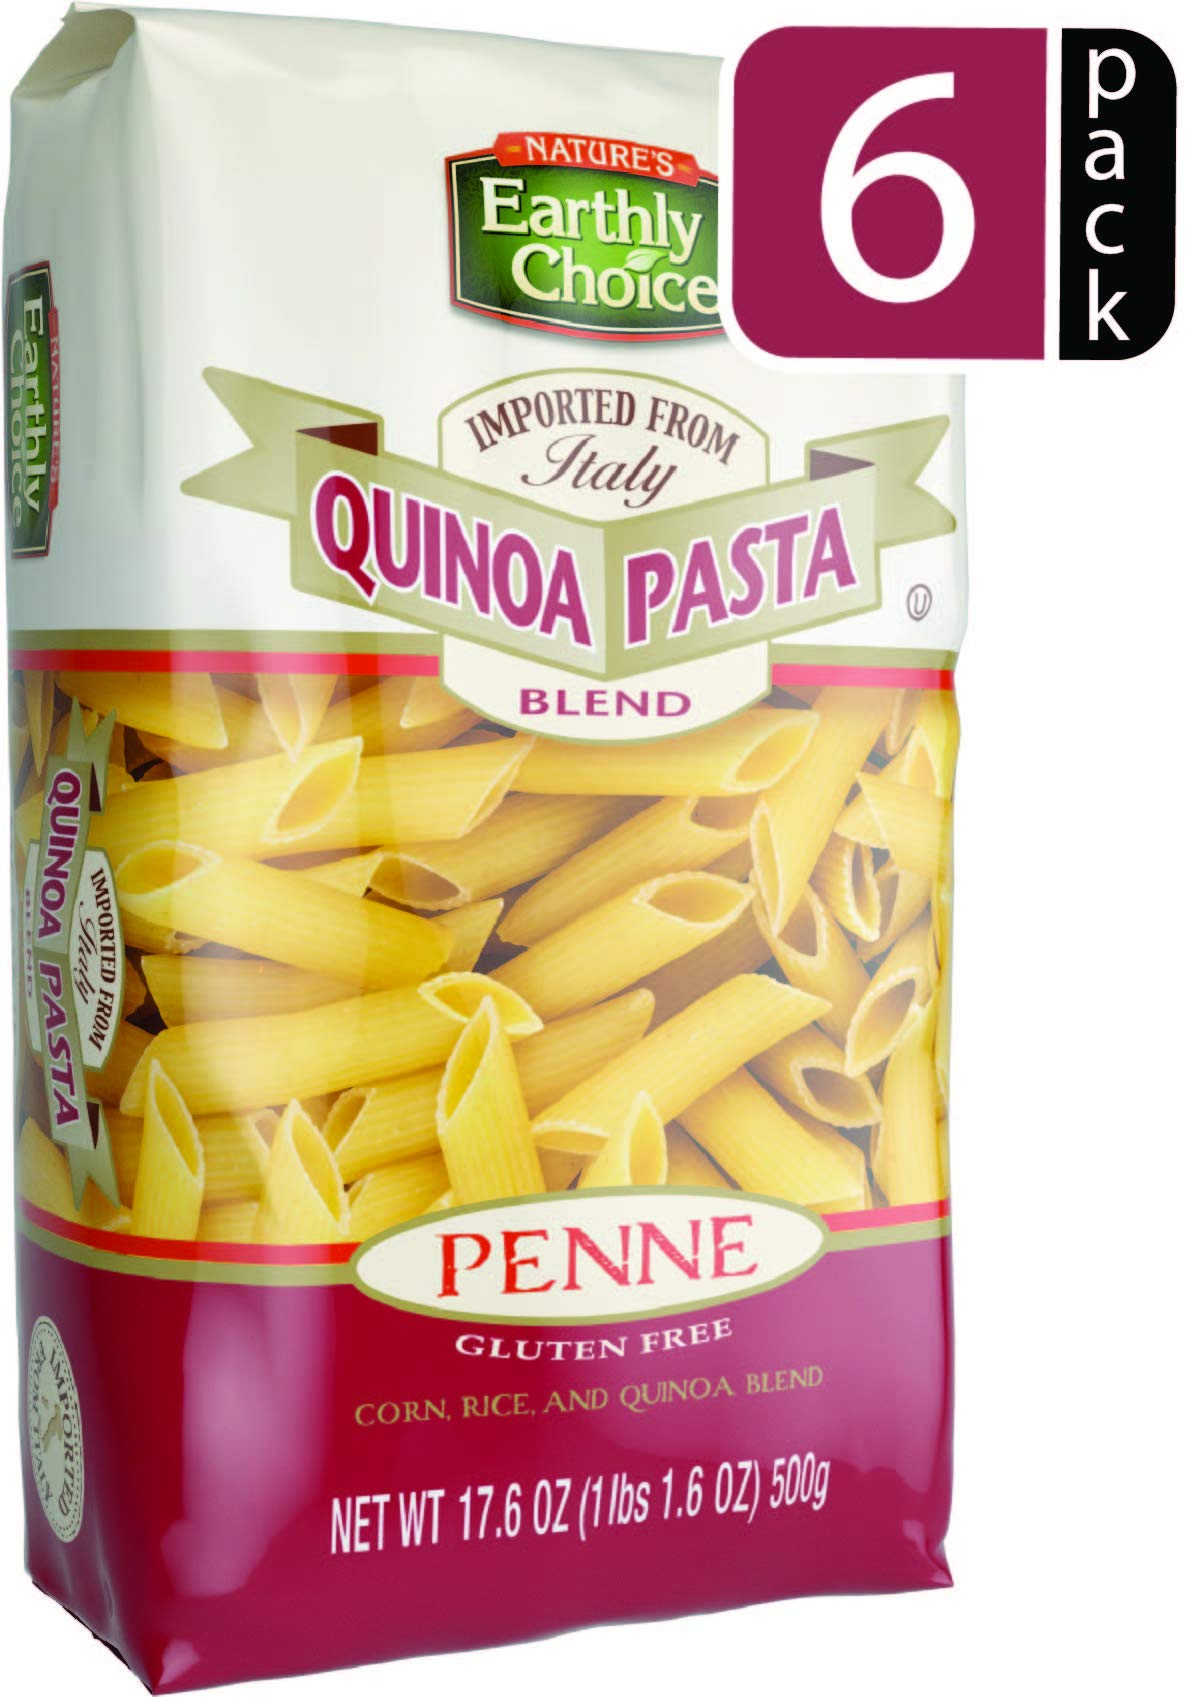 Nature's Earthly Choice Quinoa Pasta Blend, Penne, 17.6 Ounce (Pack of 6) by Nature's Earthly Choice